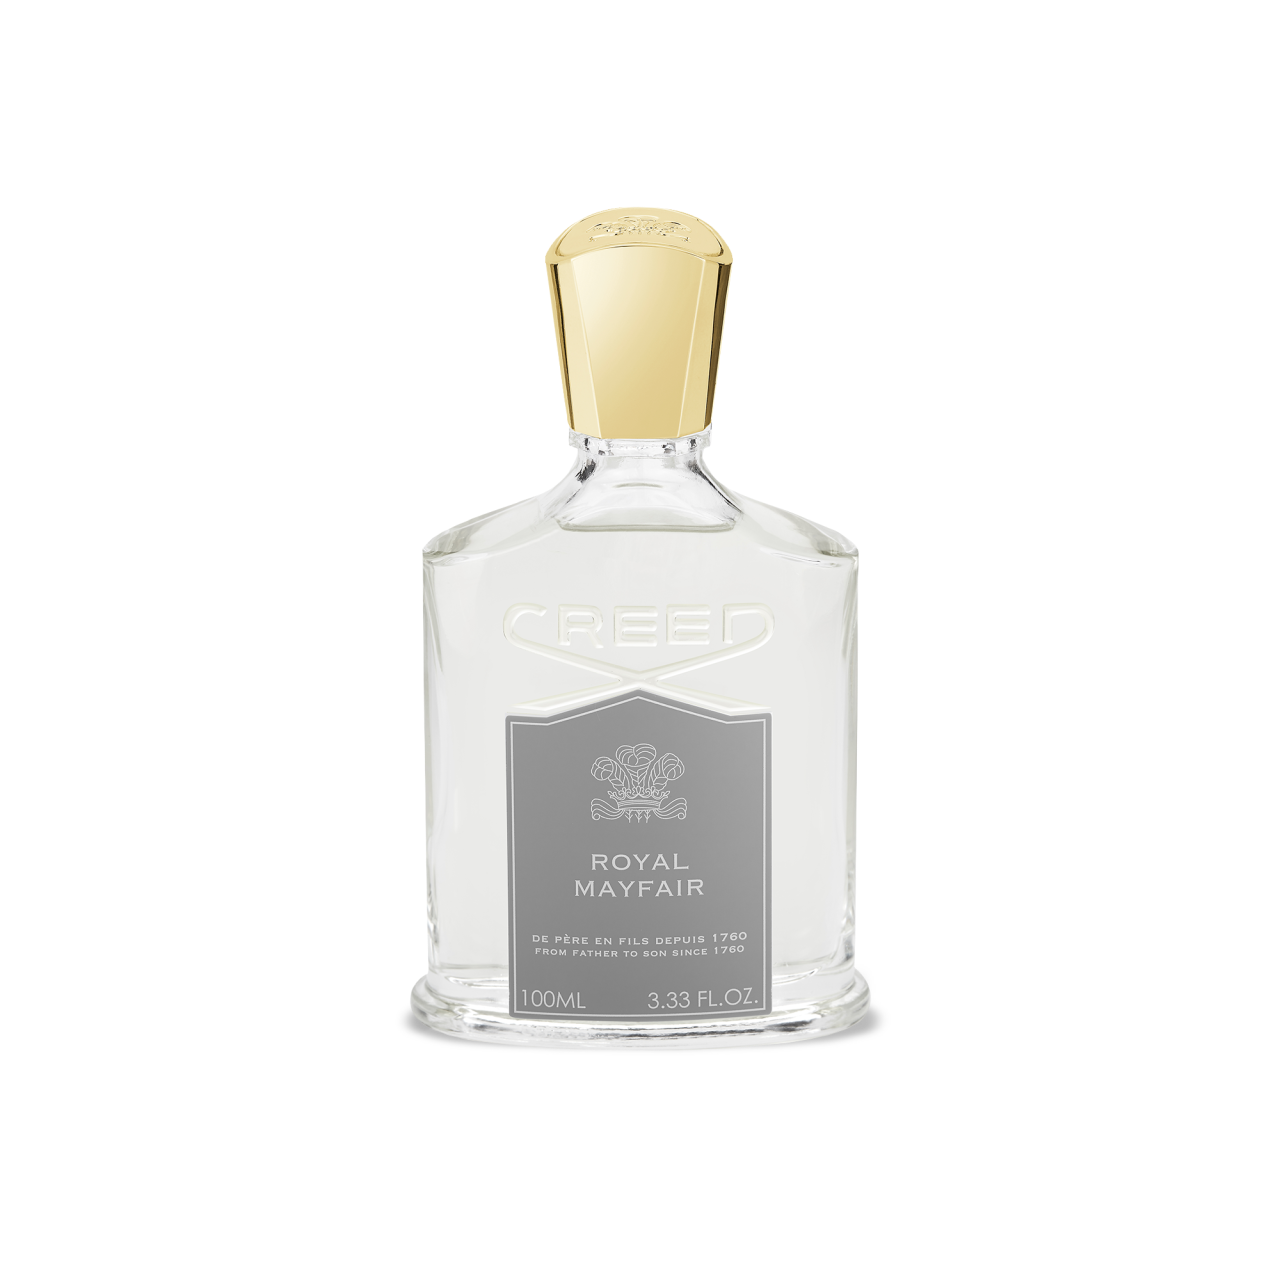 555bc1bd5414 Royal Mayfair 3.4oz - Fashionable men's cologne | Creed Official Site